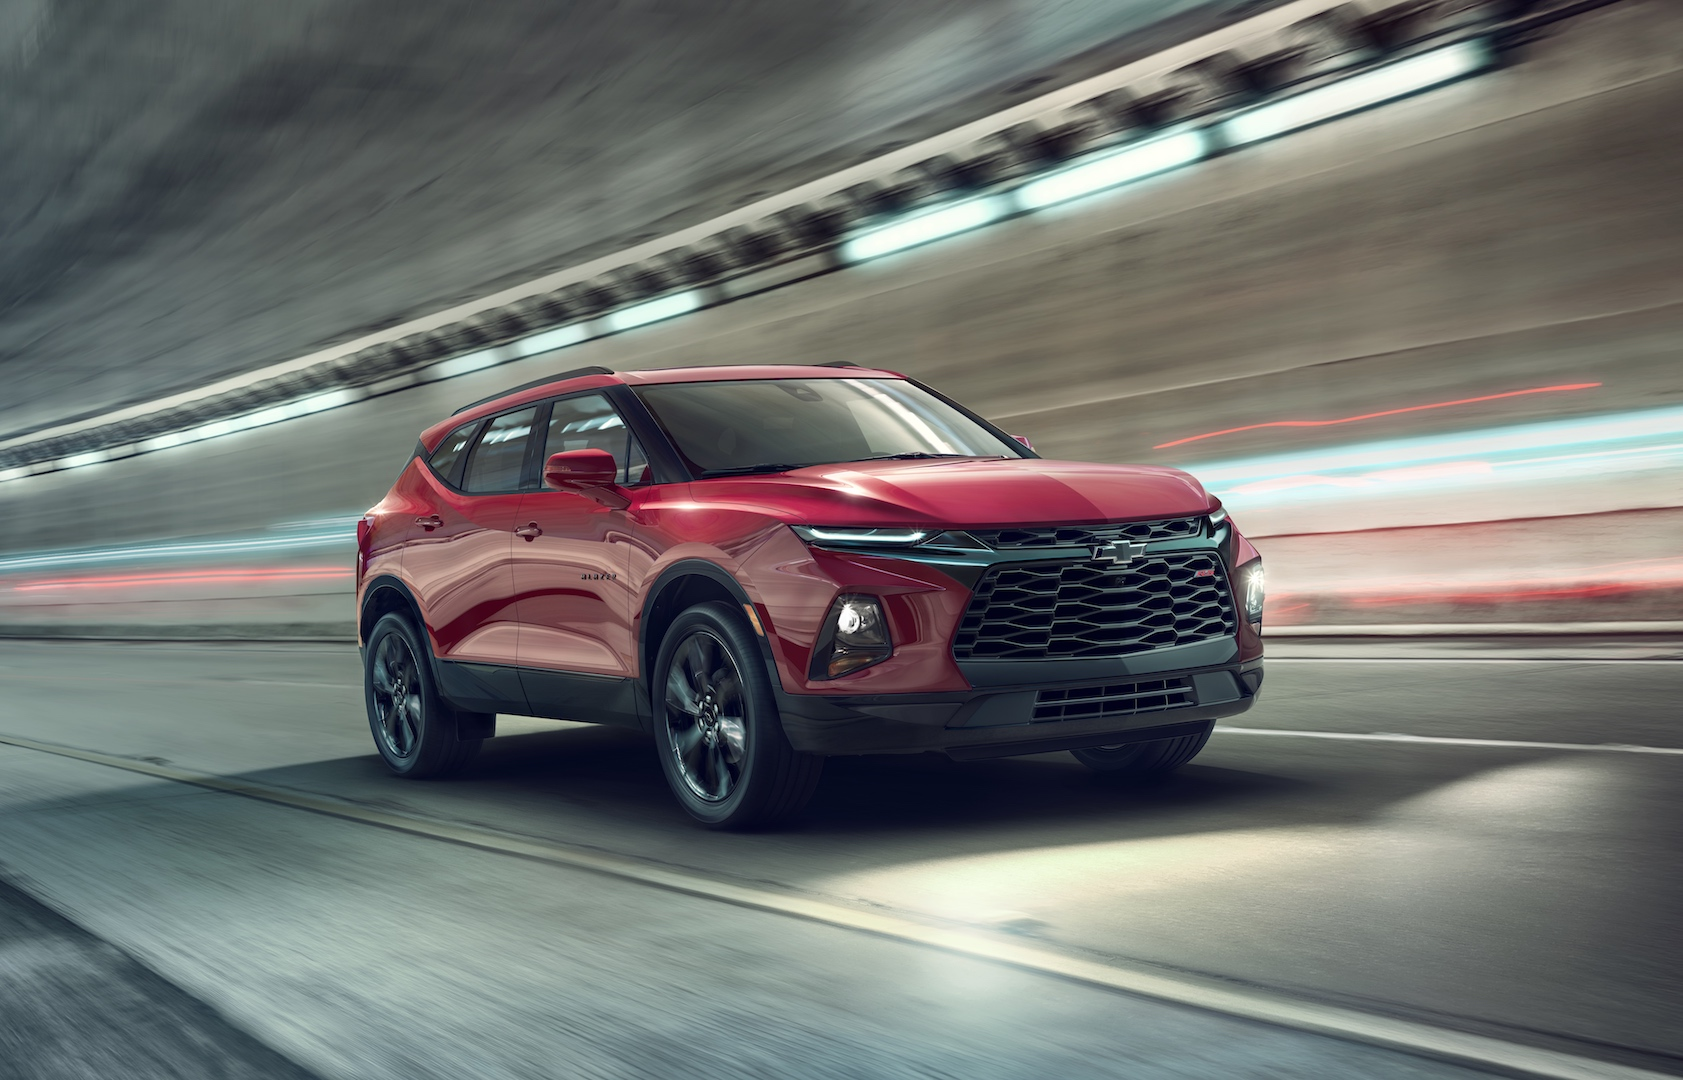 First Drive: The 2019 Chevrolet Blazer pulls a bait and switch, and